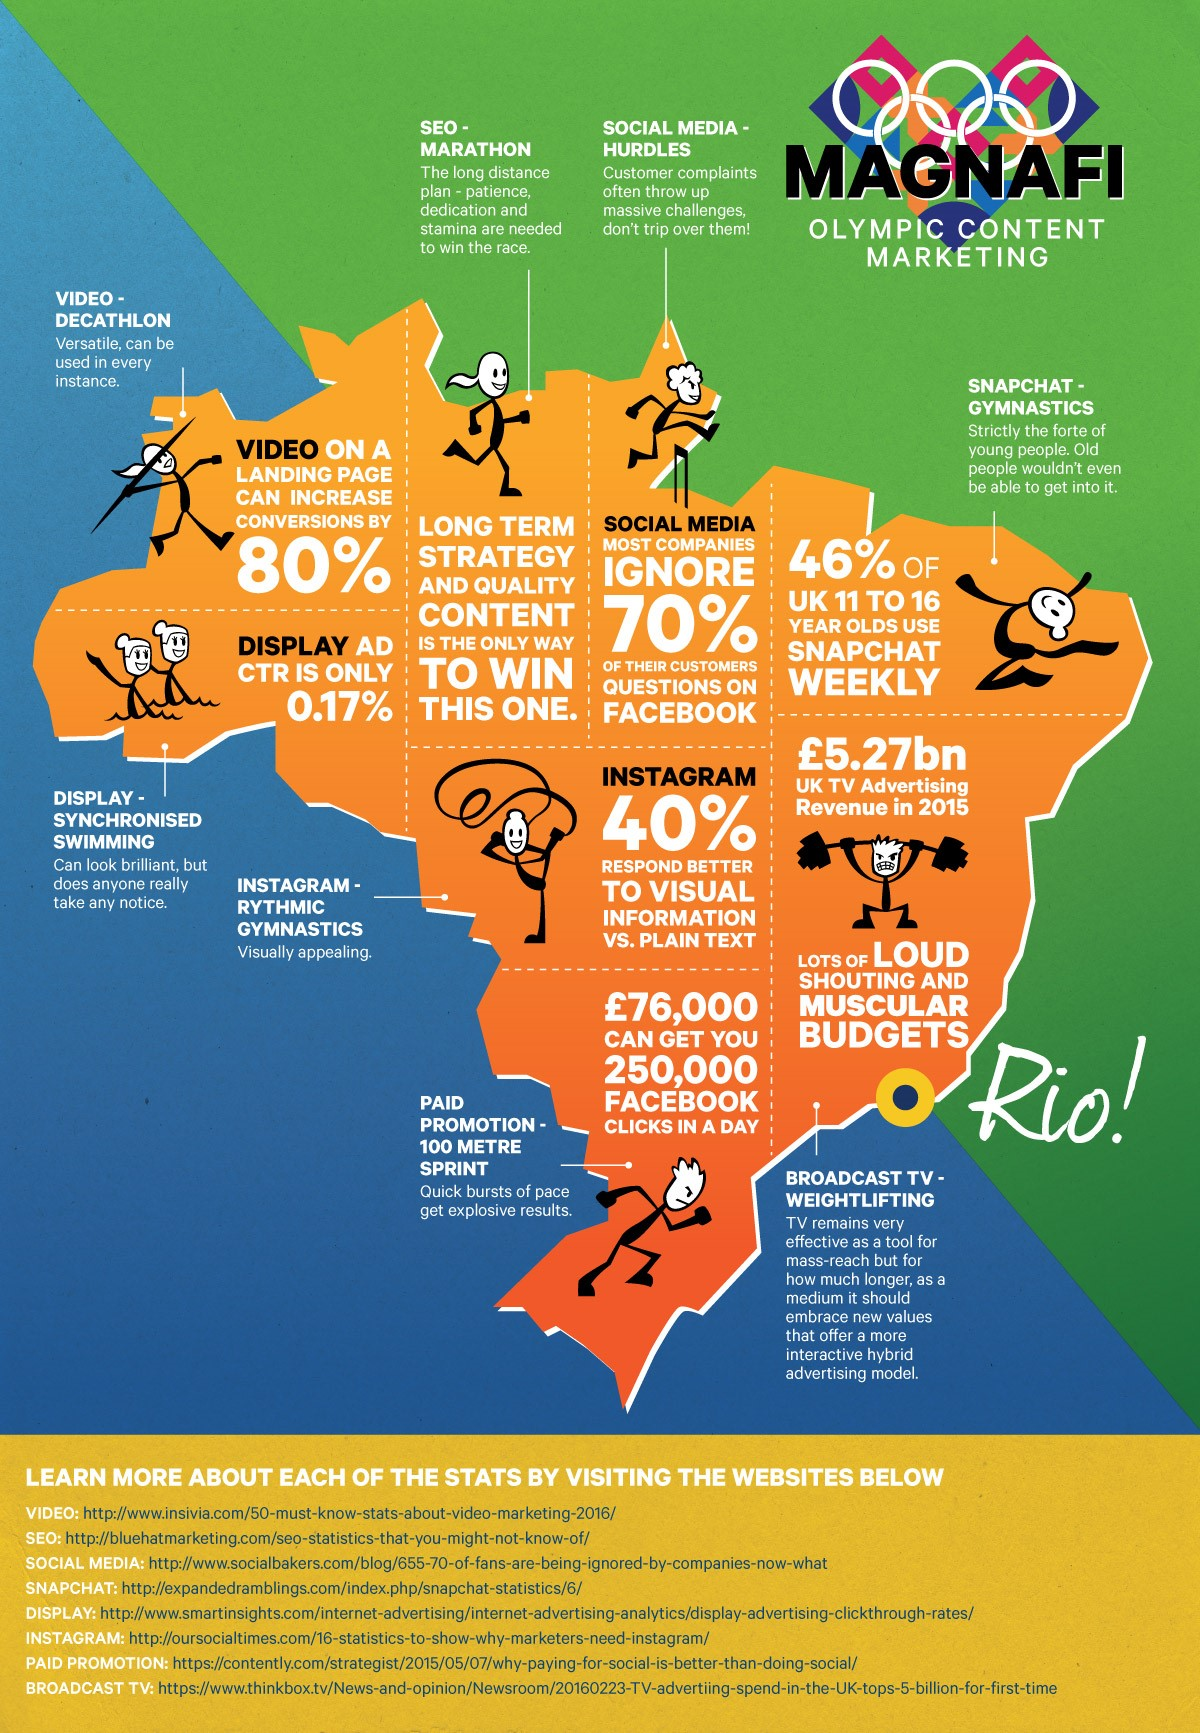 Content-Marketing-Olympics-rio-infographic-plaza